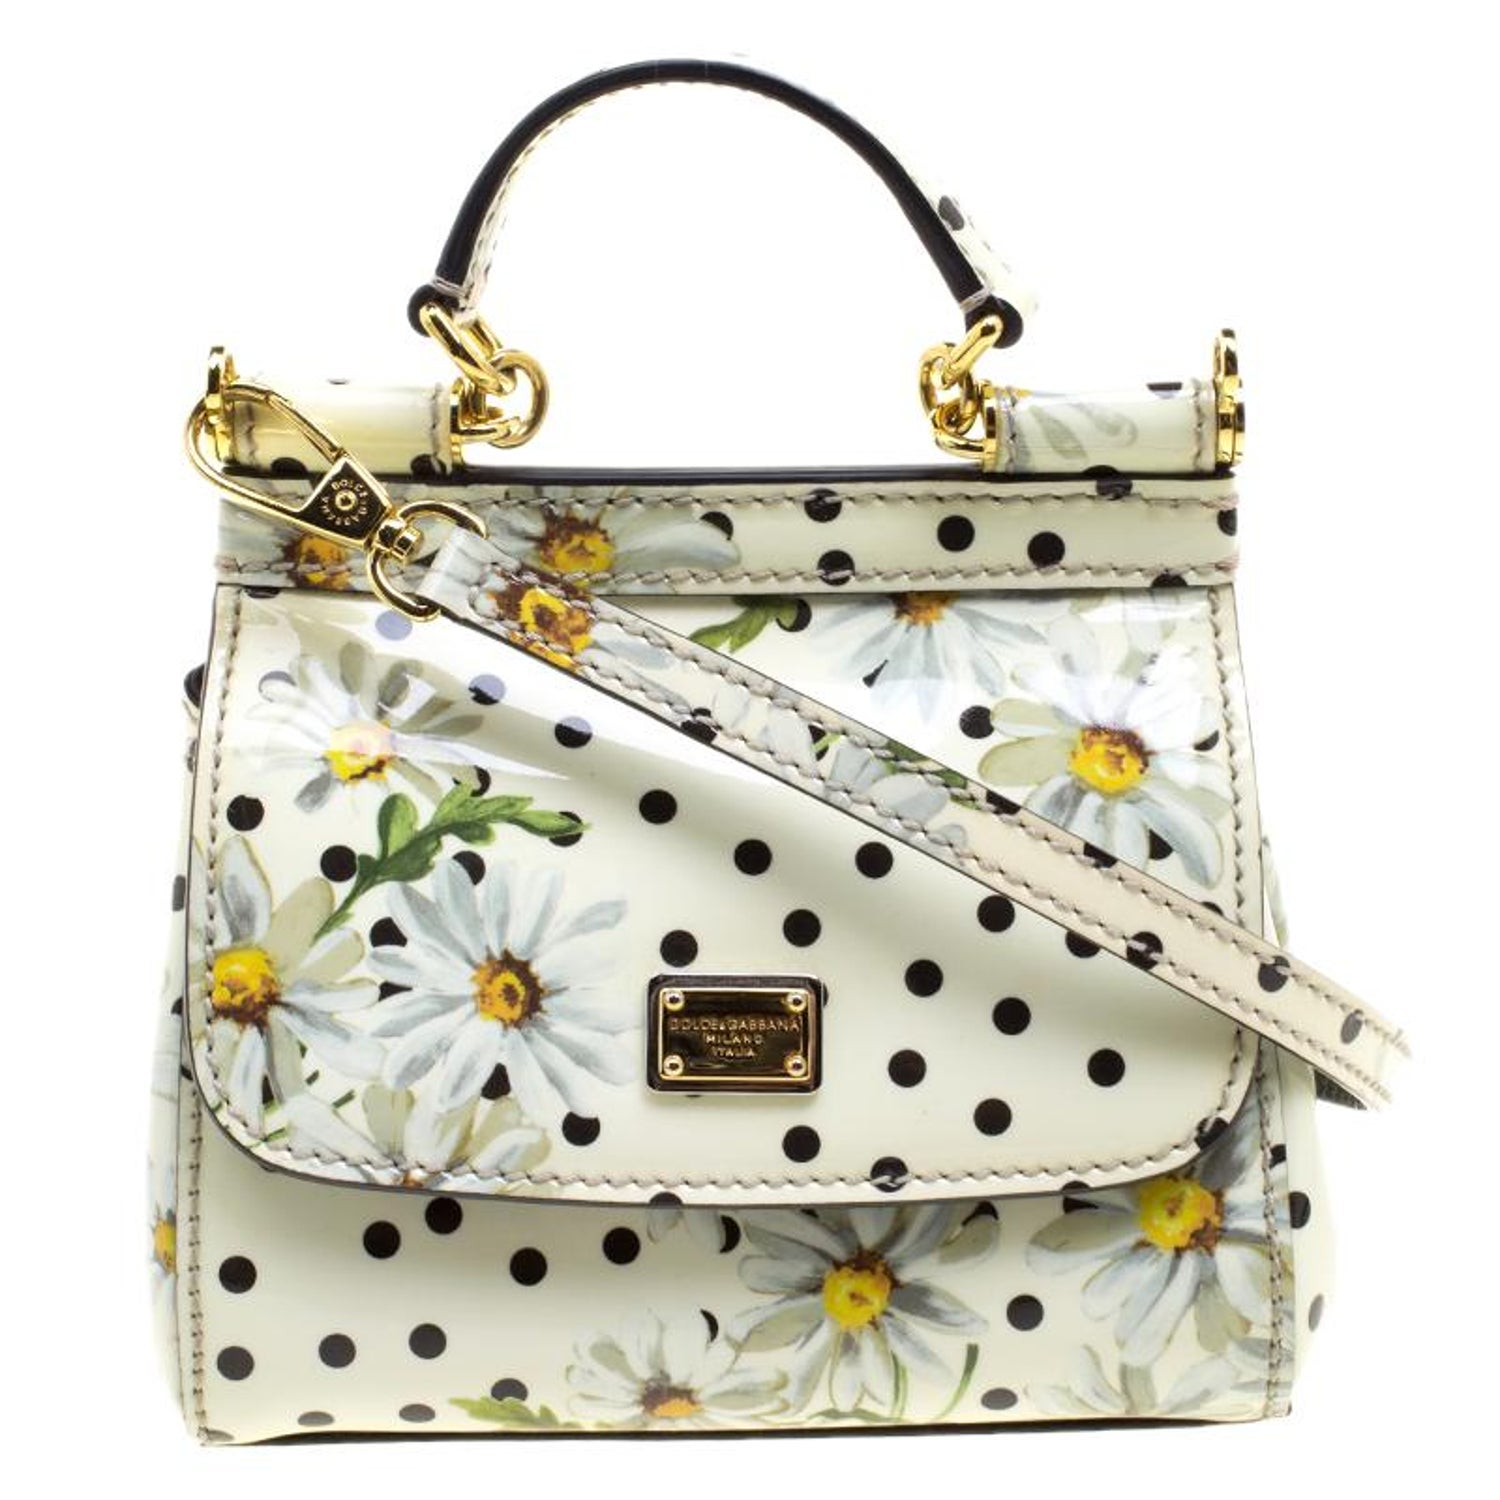 0dfcbcafd1cd Dolce and Gabbana White Polka Dots Floral Print Patent Leather Miss Sicily  Cross For Sale at 1stdibs